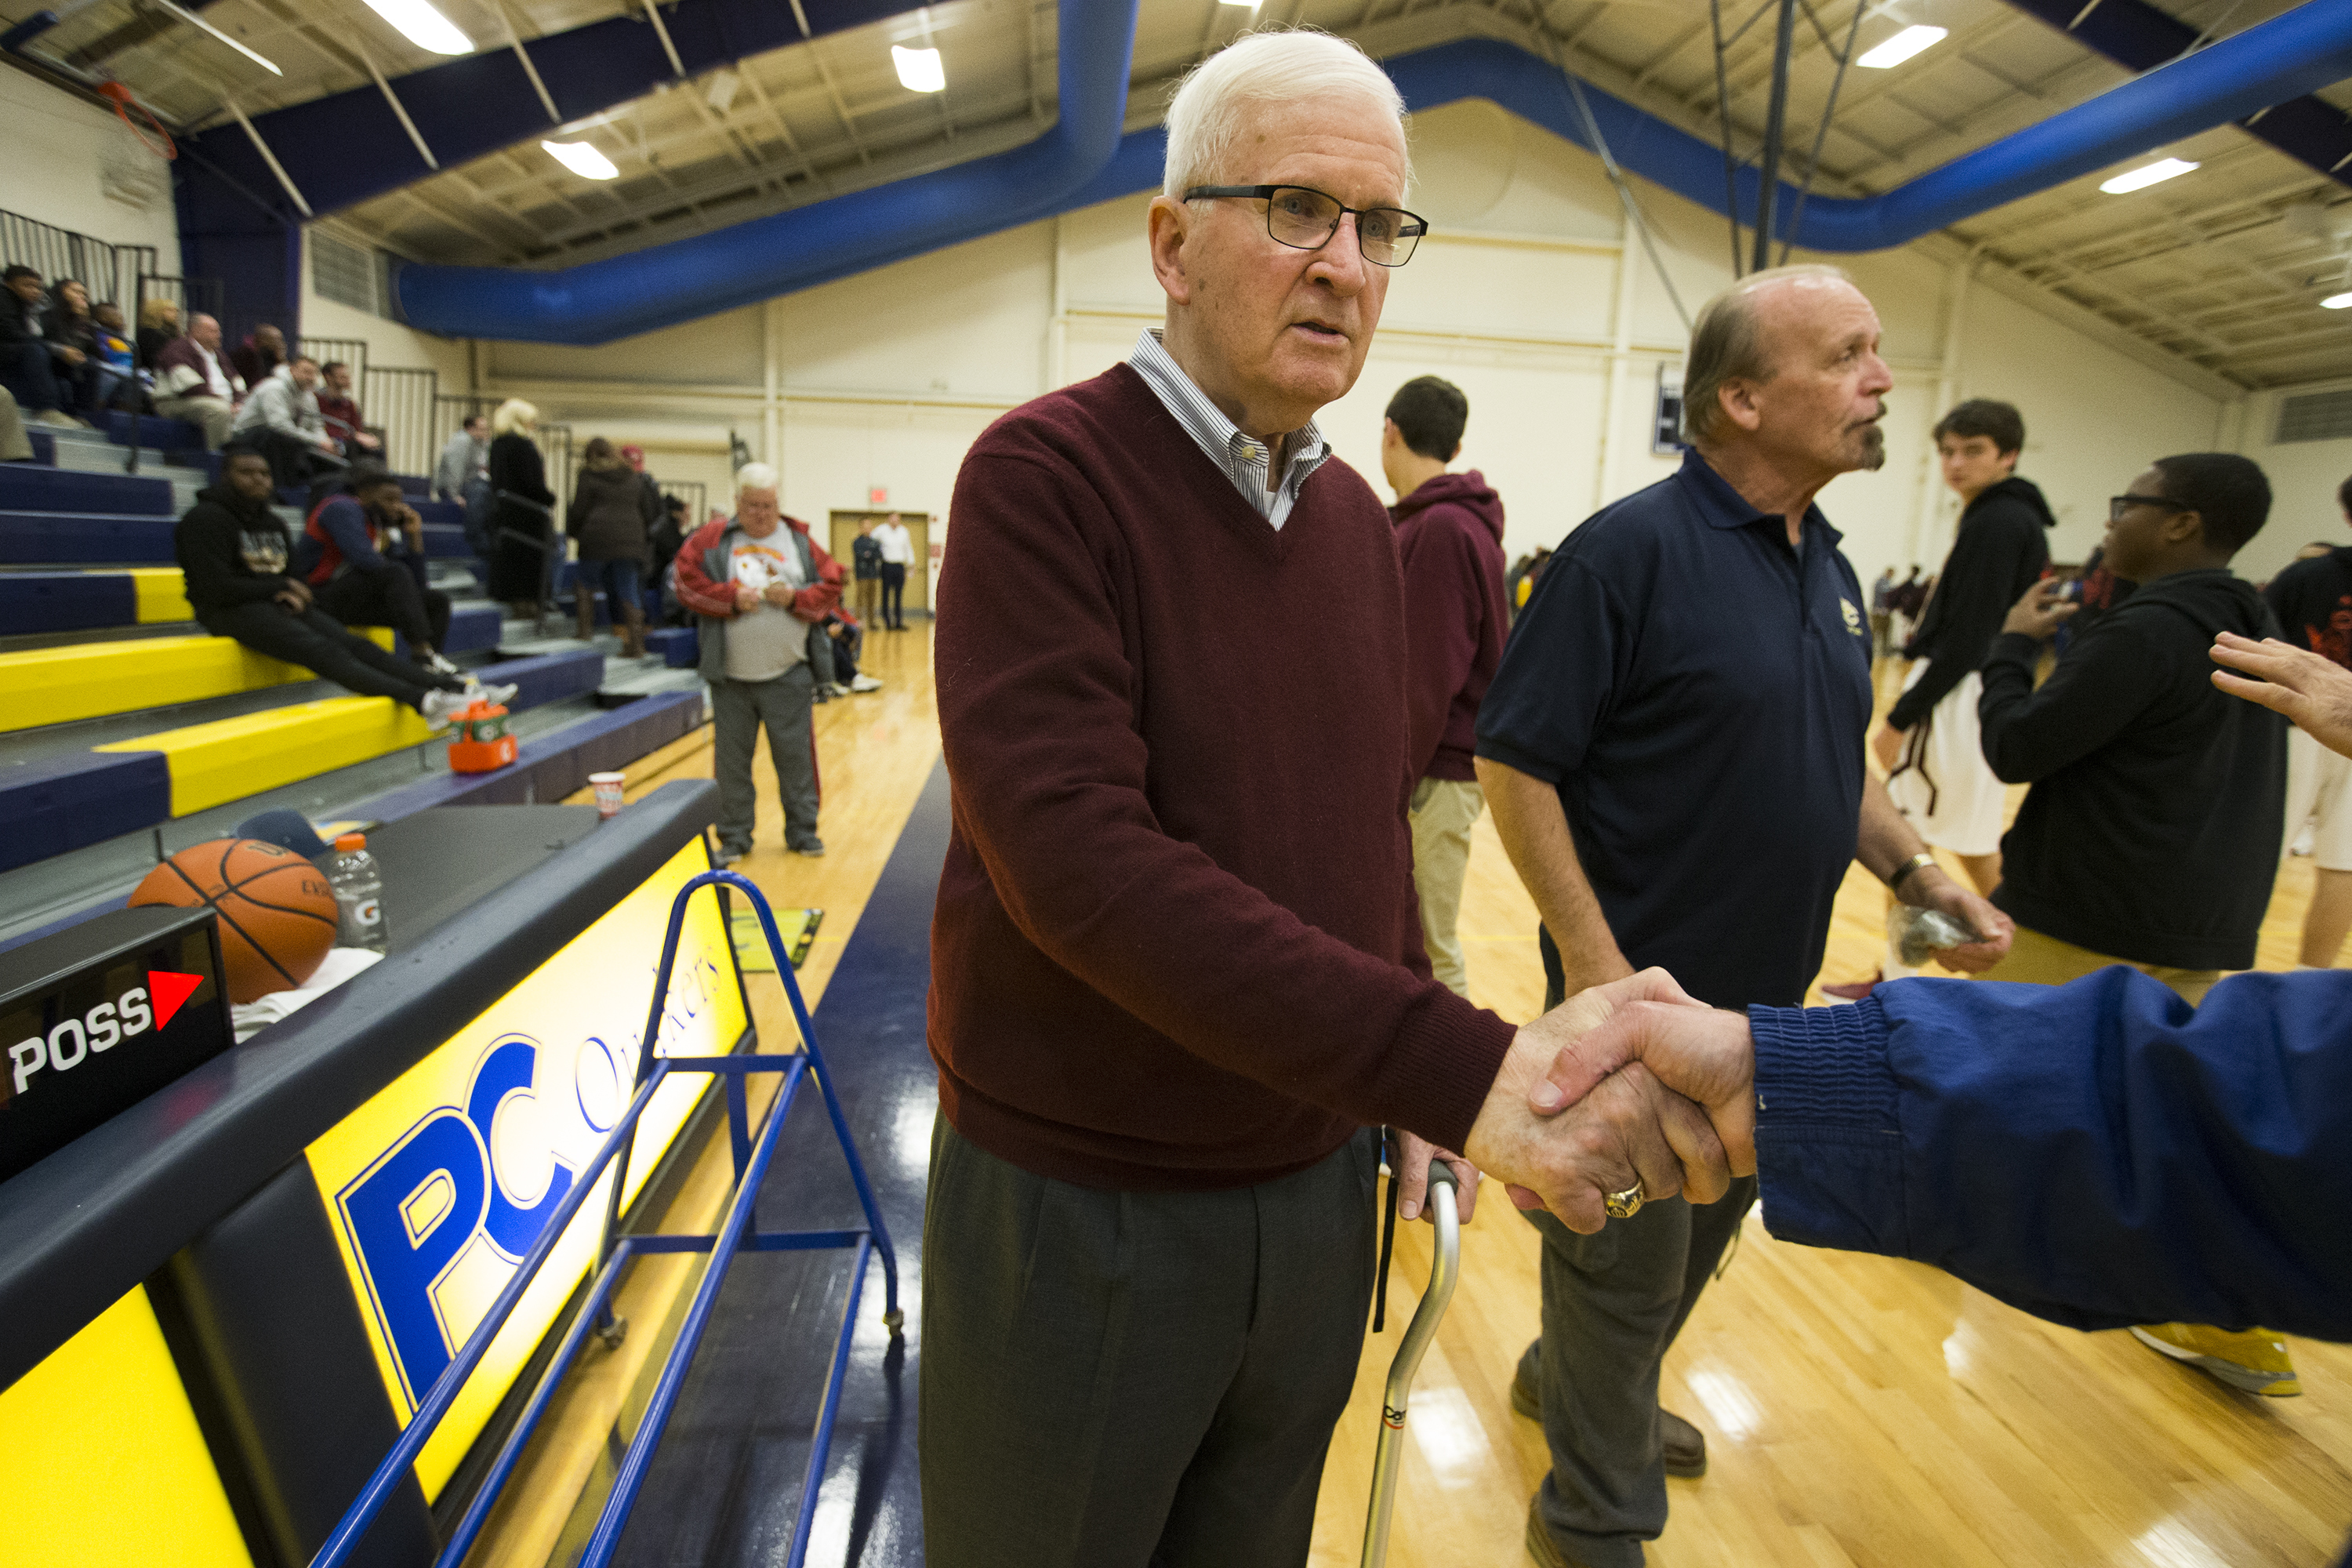 Speedy Morris, current St. Joseph's Prep coach, formerly coach at Roman Catholic High School, La Salle University women and La Salle University men. Over 20 active coaches either played for or coached under Morris. He is greeted before their game against Girard College on Dec. 8 , 2017. CHARLES FOX / Staff Photographer